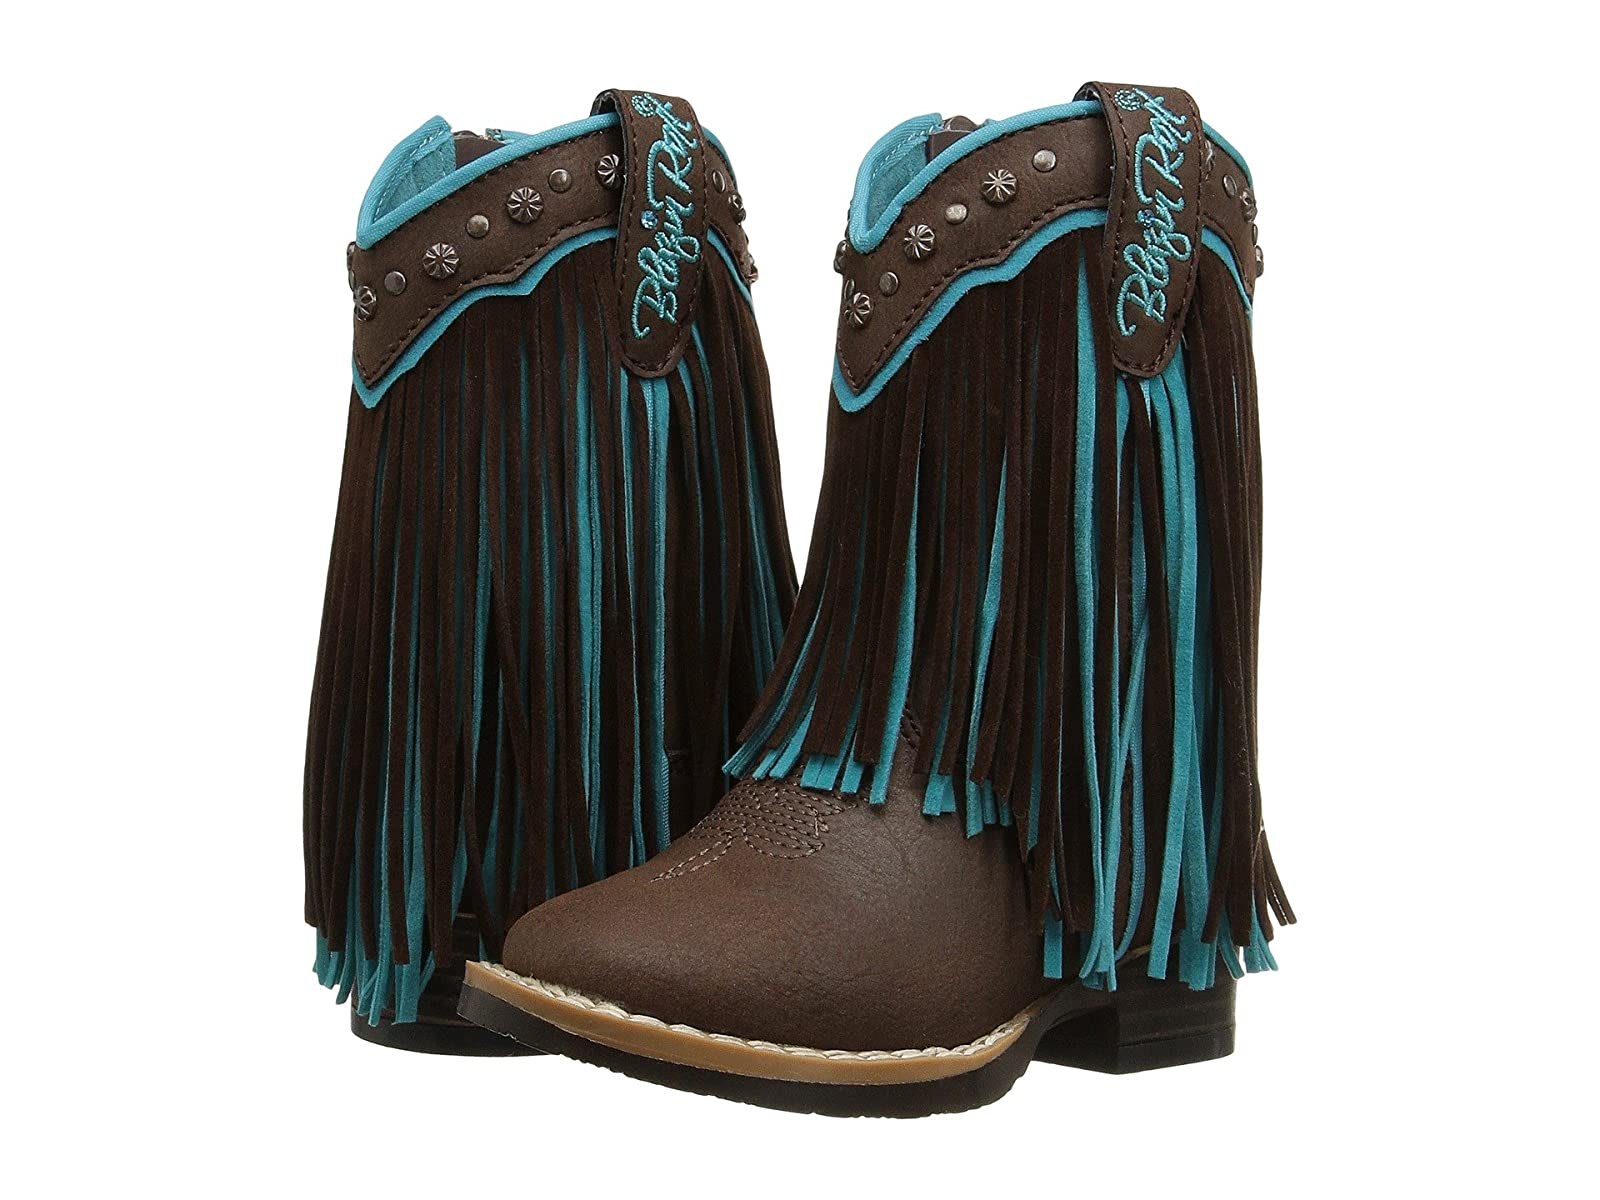 M&F Western Kids Candace (Toddler)Affordable and distinctive shoes